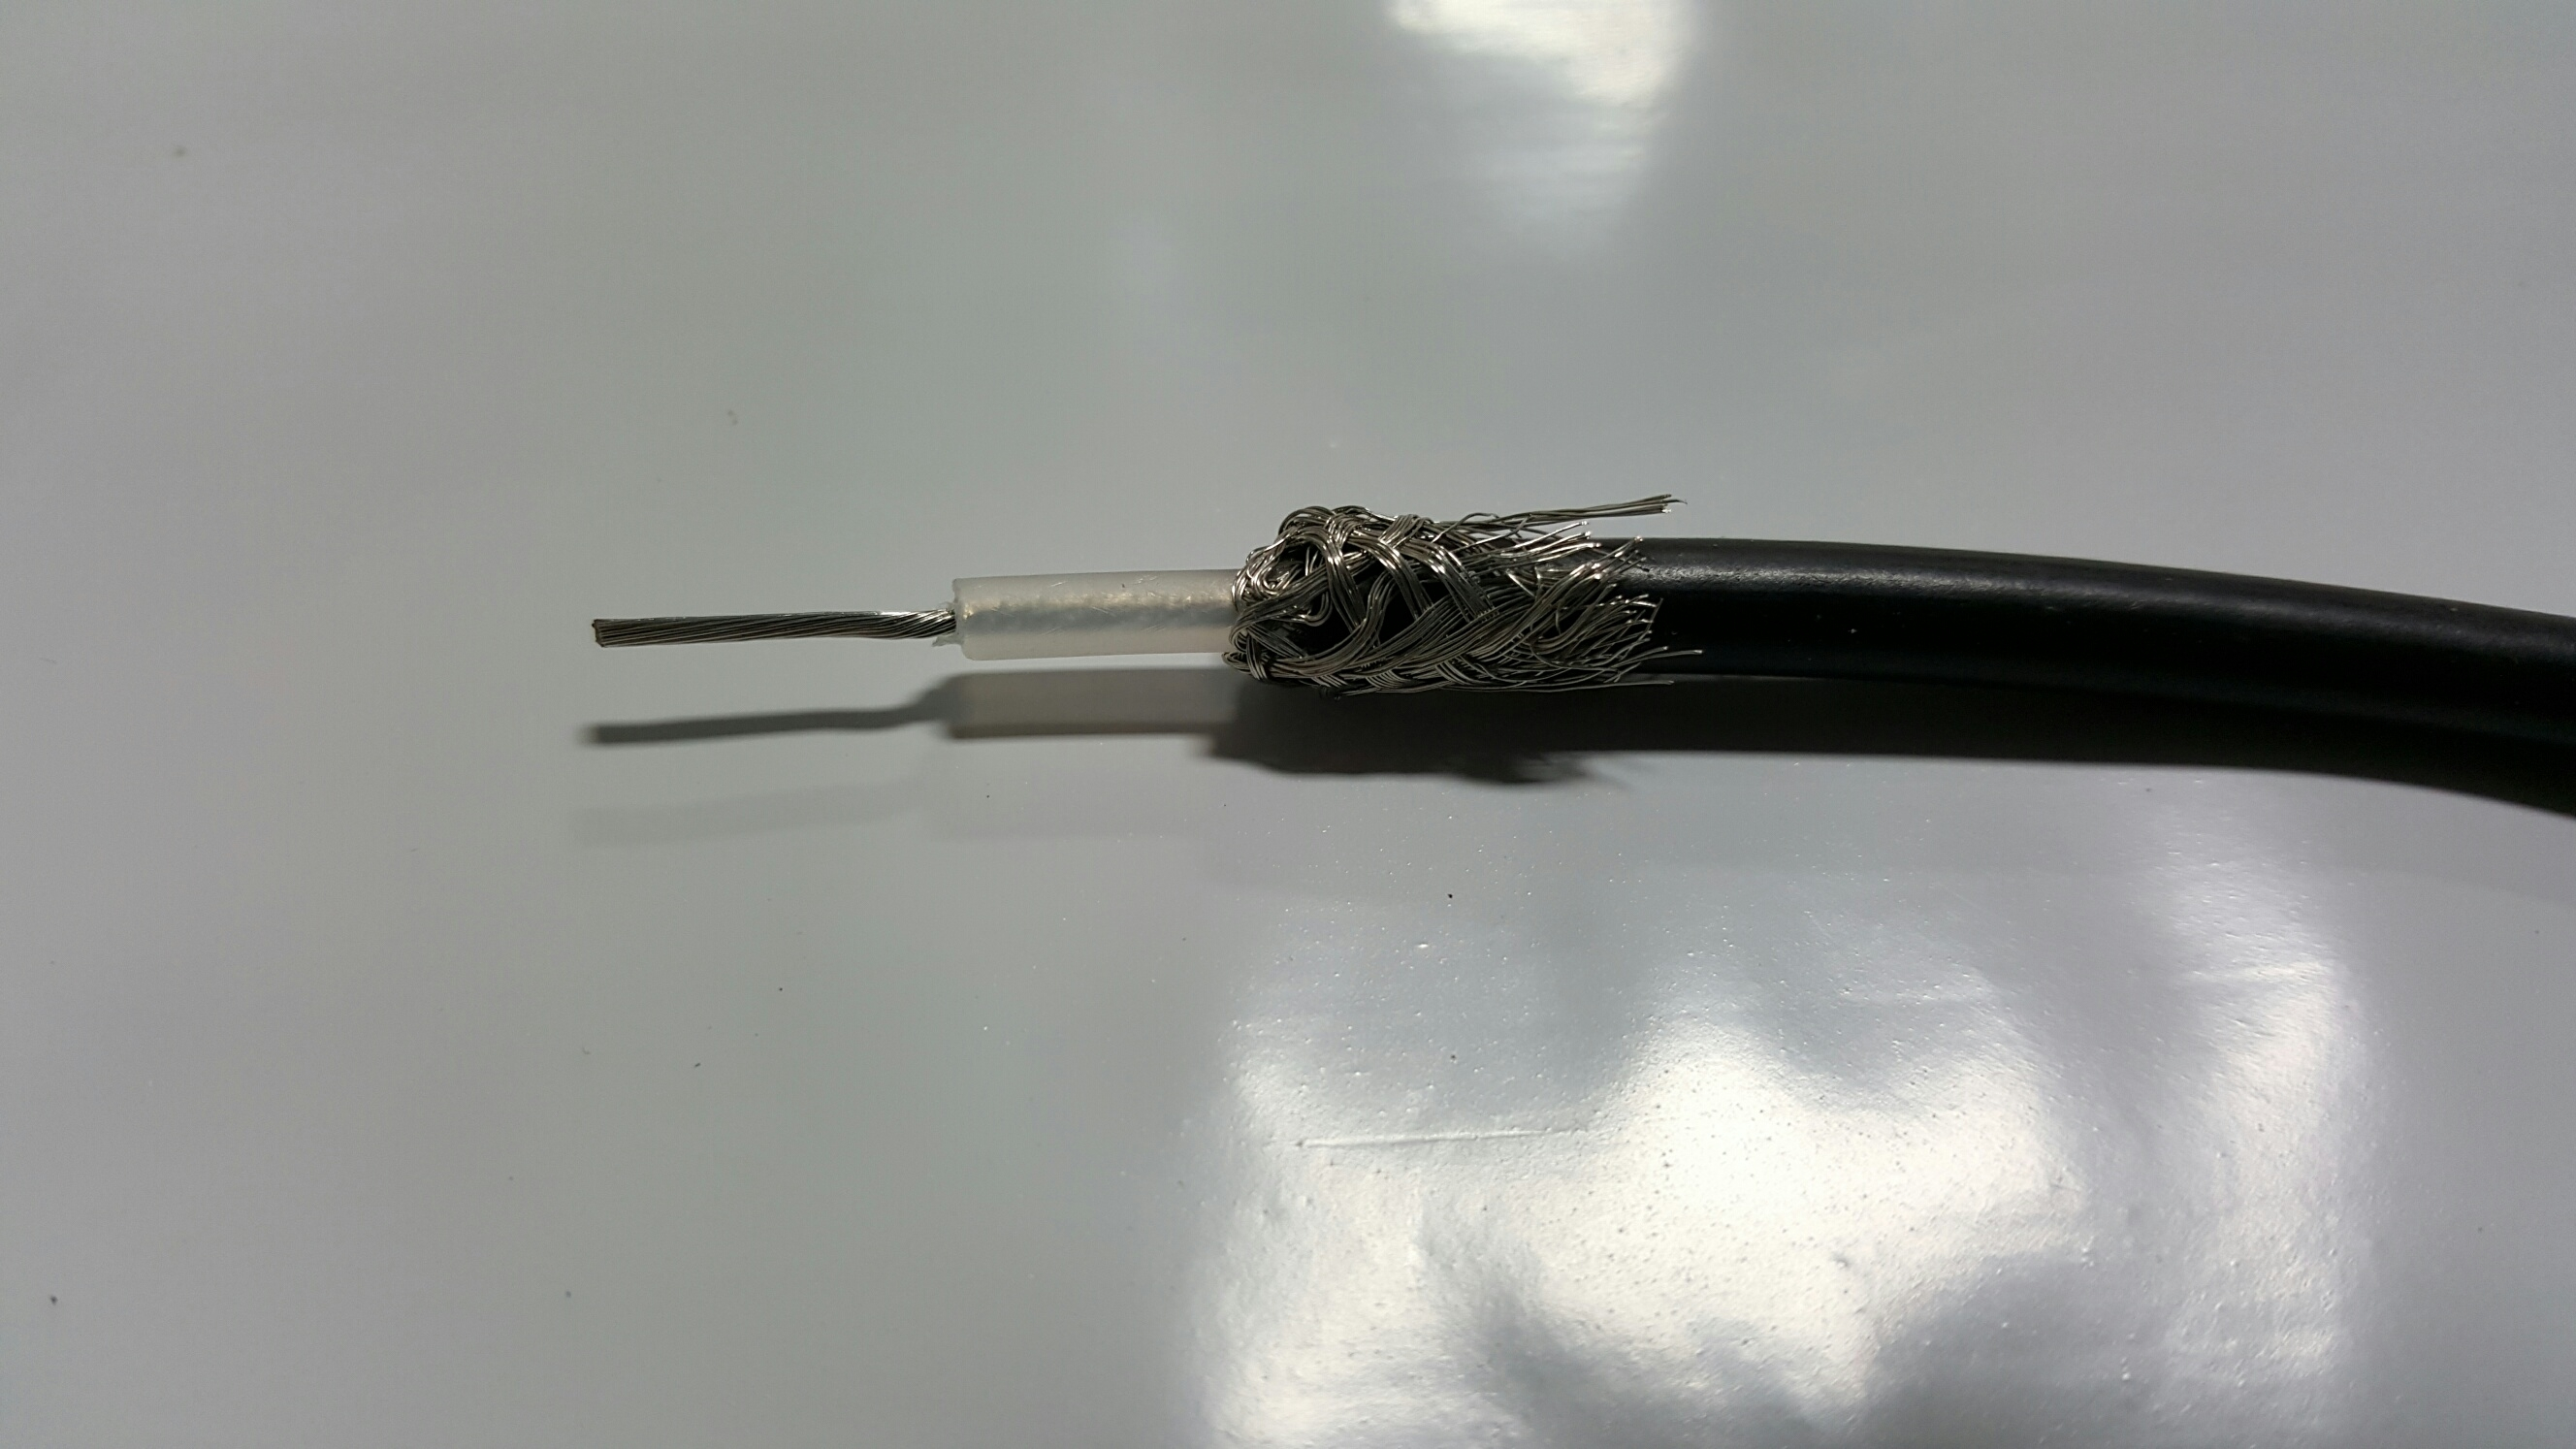 How to strip back a uhf cable to connect a pl259 connector